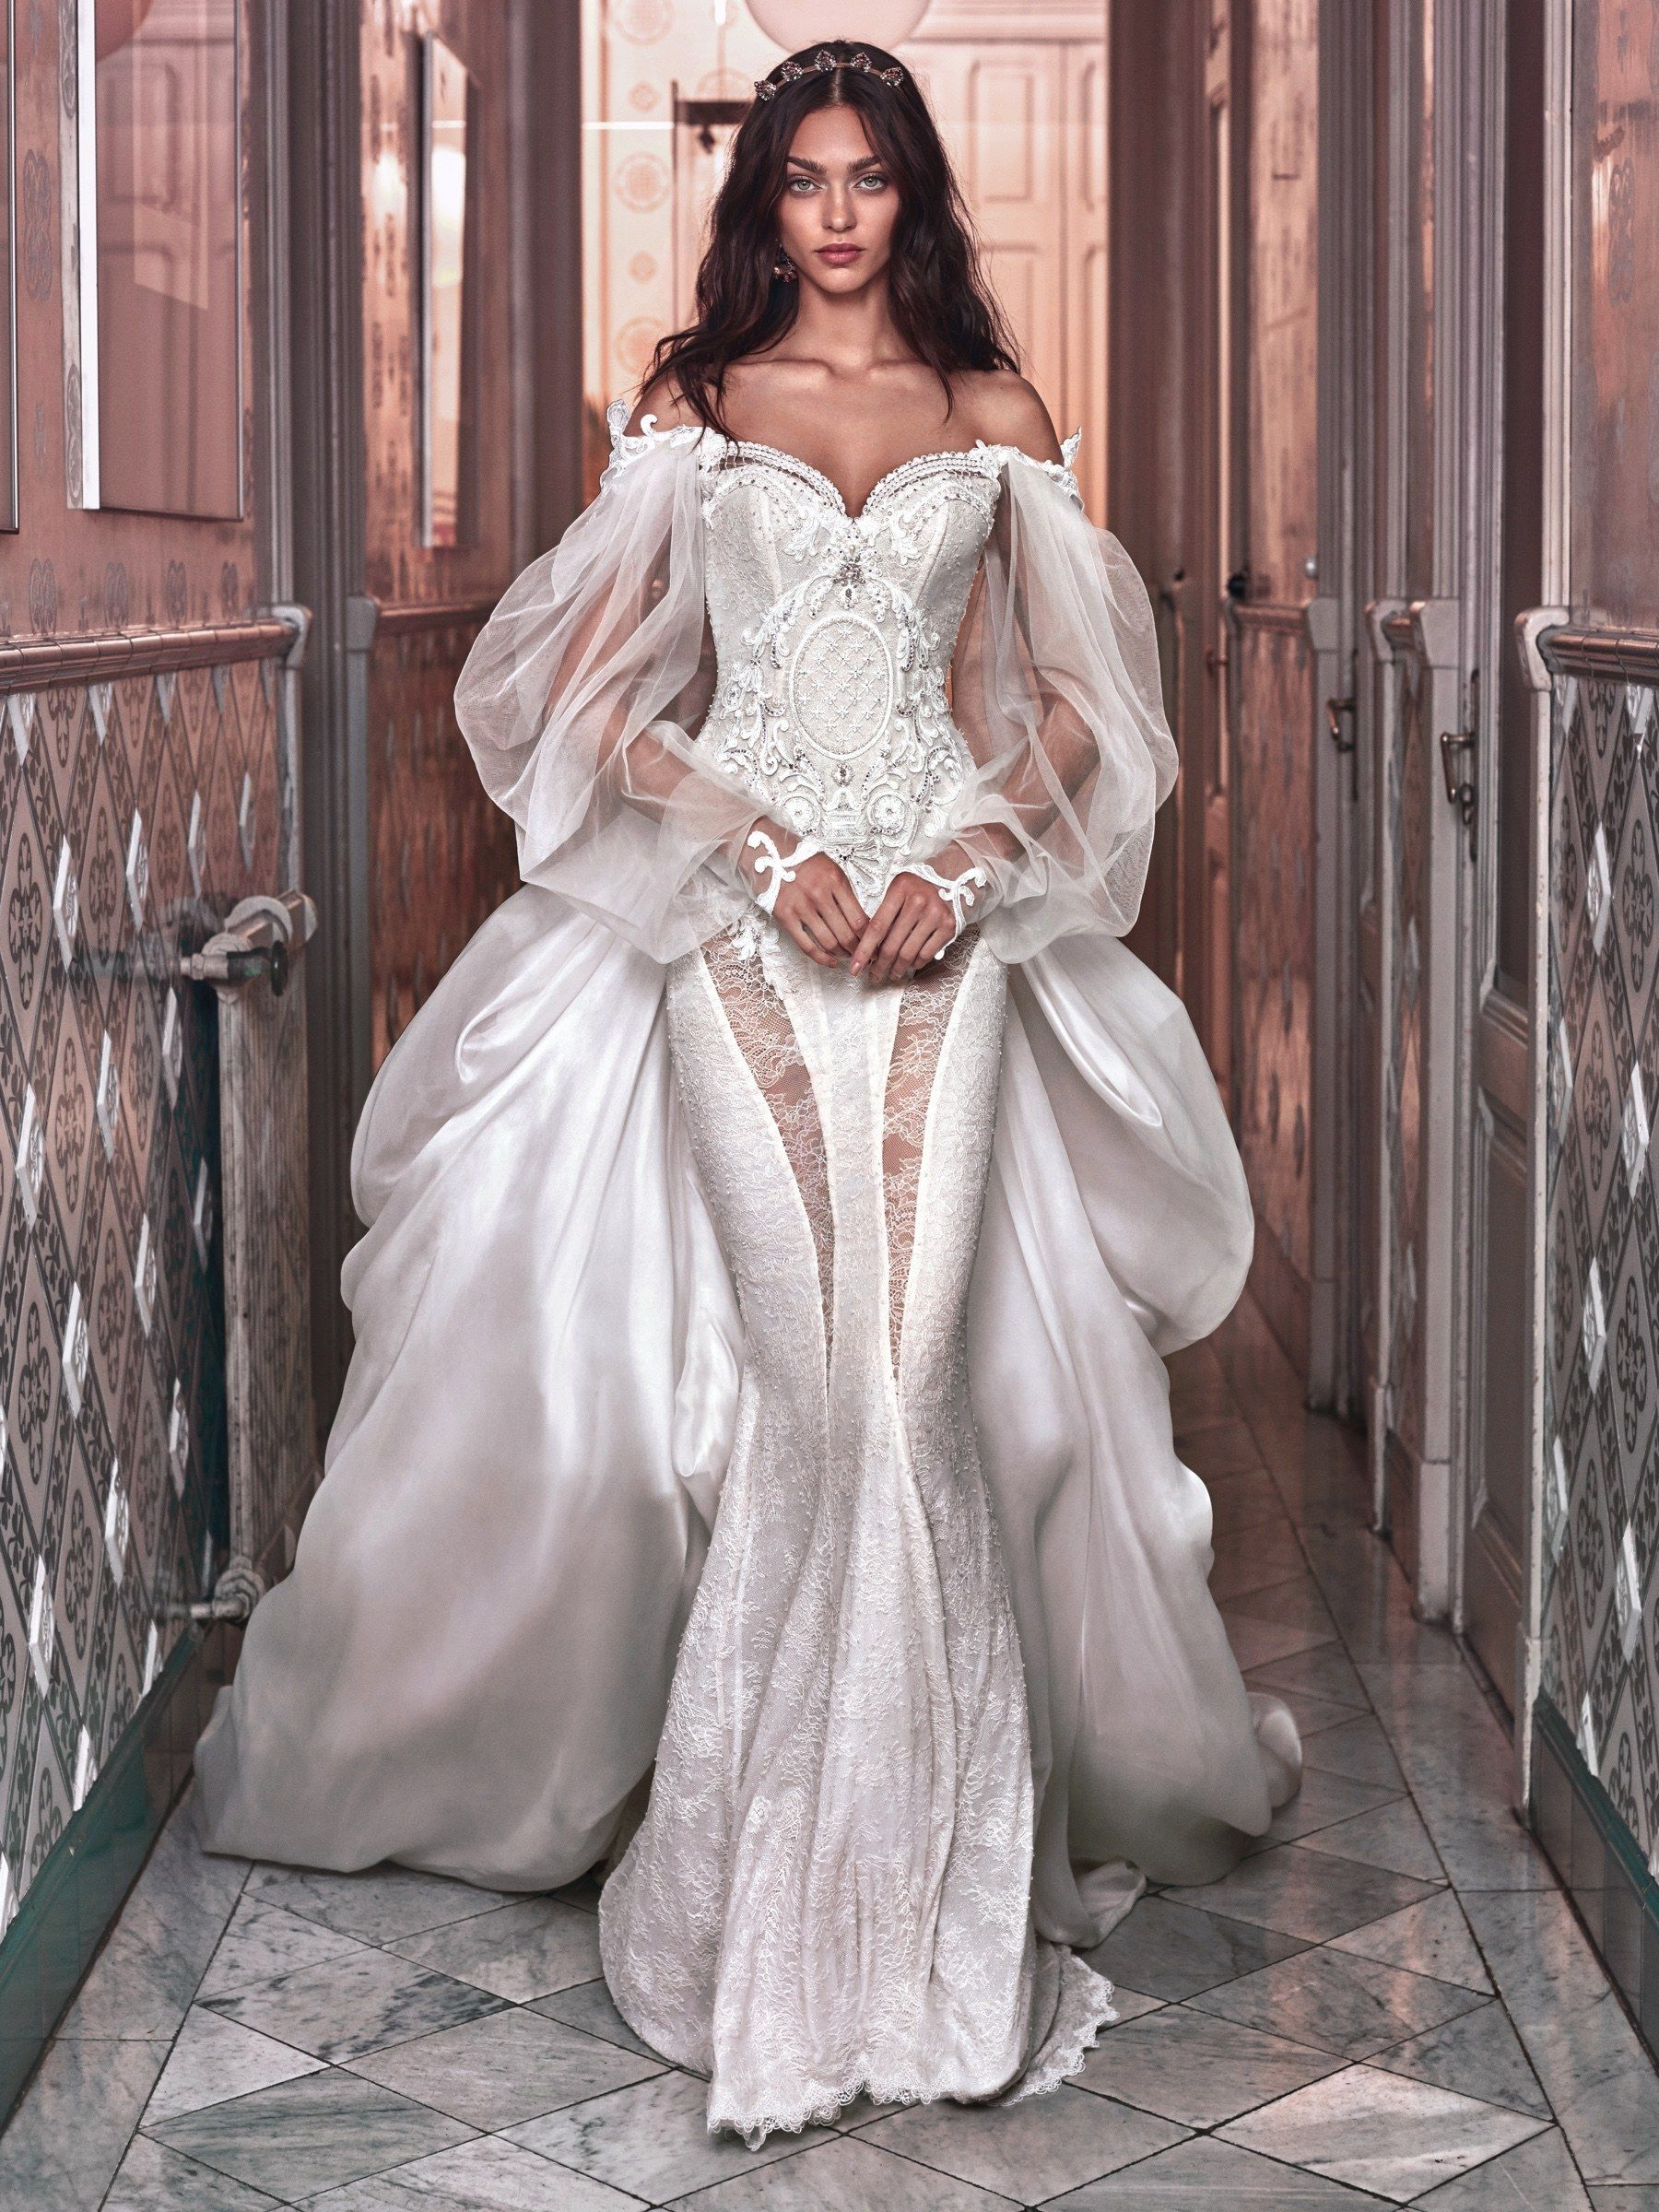 This Is The 12 000 Wedding Dress Beyoncé Wore To Renew Her Vows Jay Z